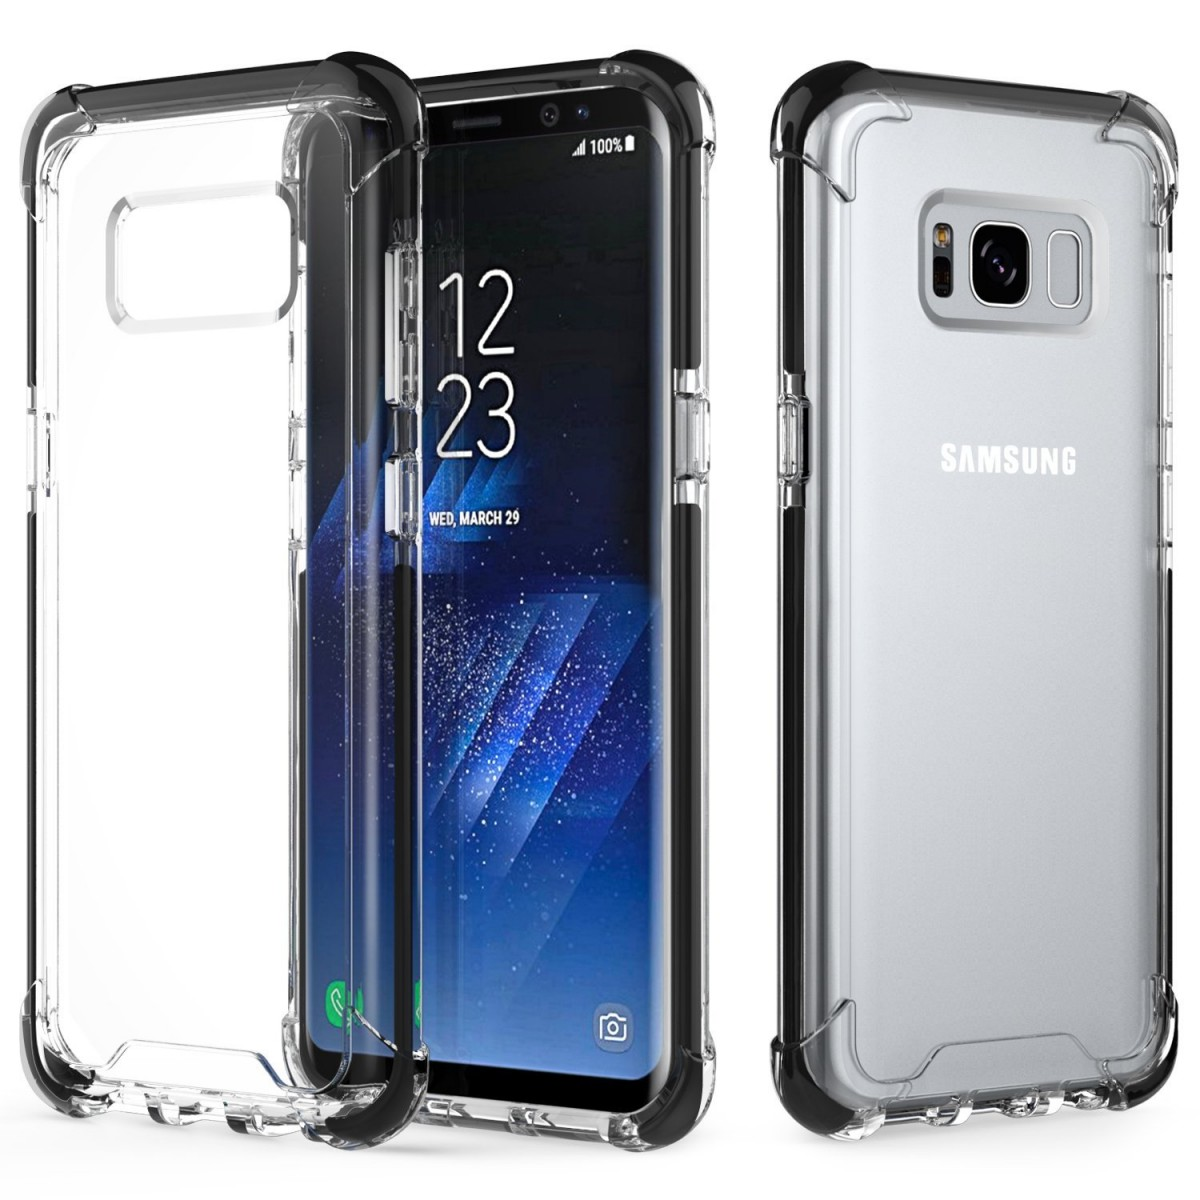 separation shoes 1aec3 1064a Galaxy S8 Plus Case, MoKo Crystal Clear TPU Bumper Gel Case Shockproof TPE  Edge + Rigid PC Hard Back Cover for Samsung Galaxy S8 Plus 6.2 Inch (2017)  ...